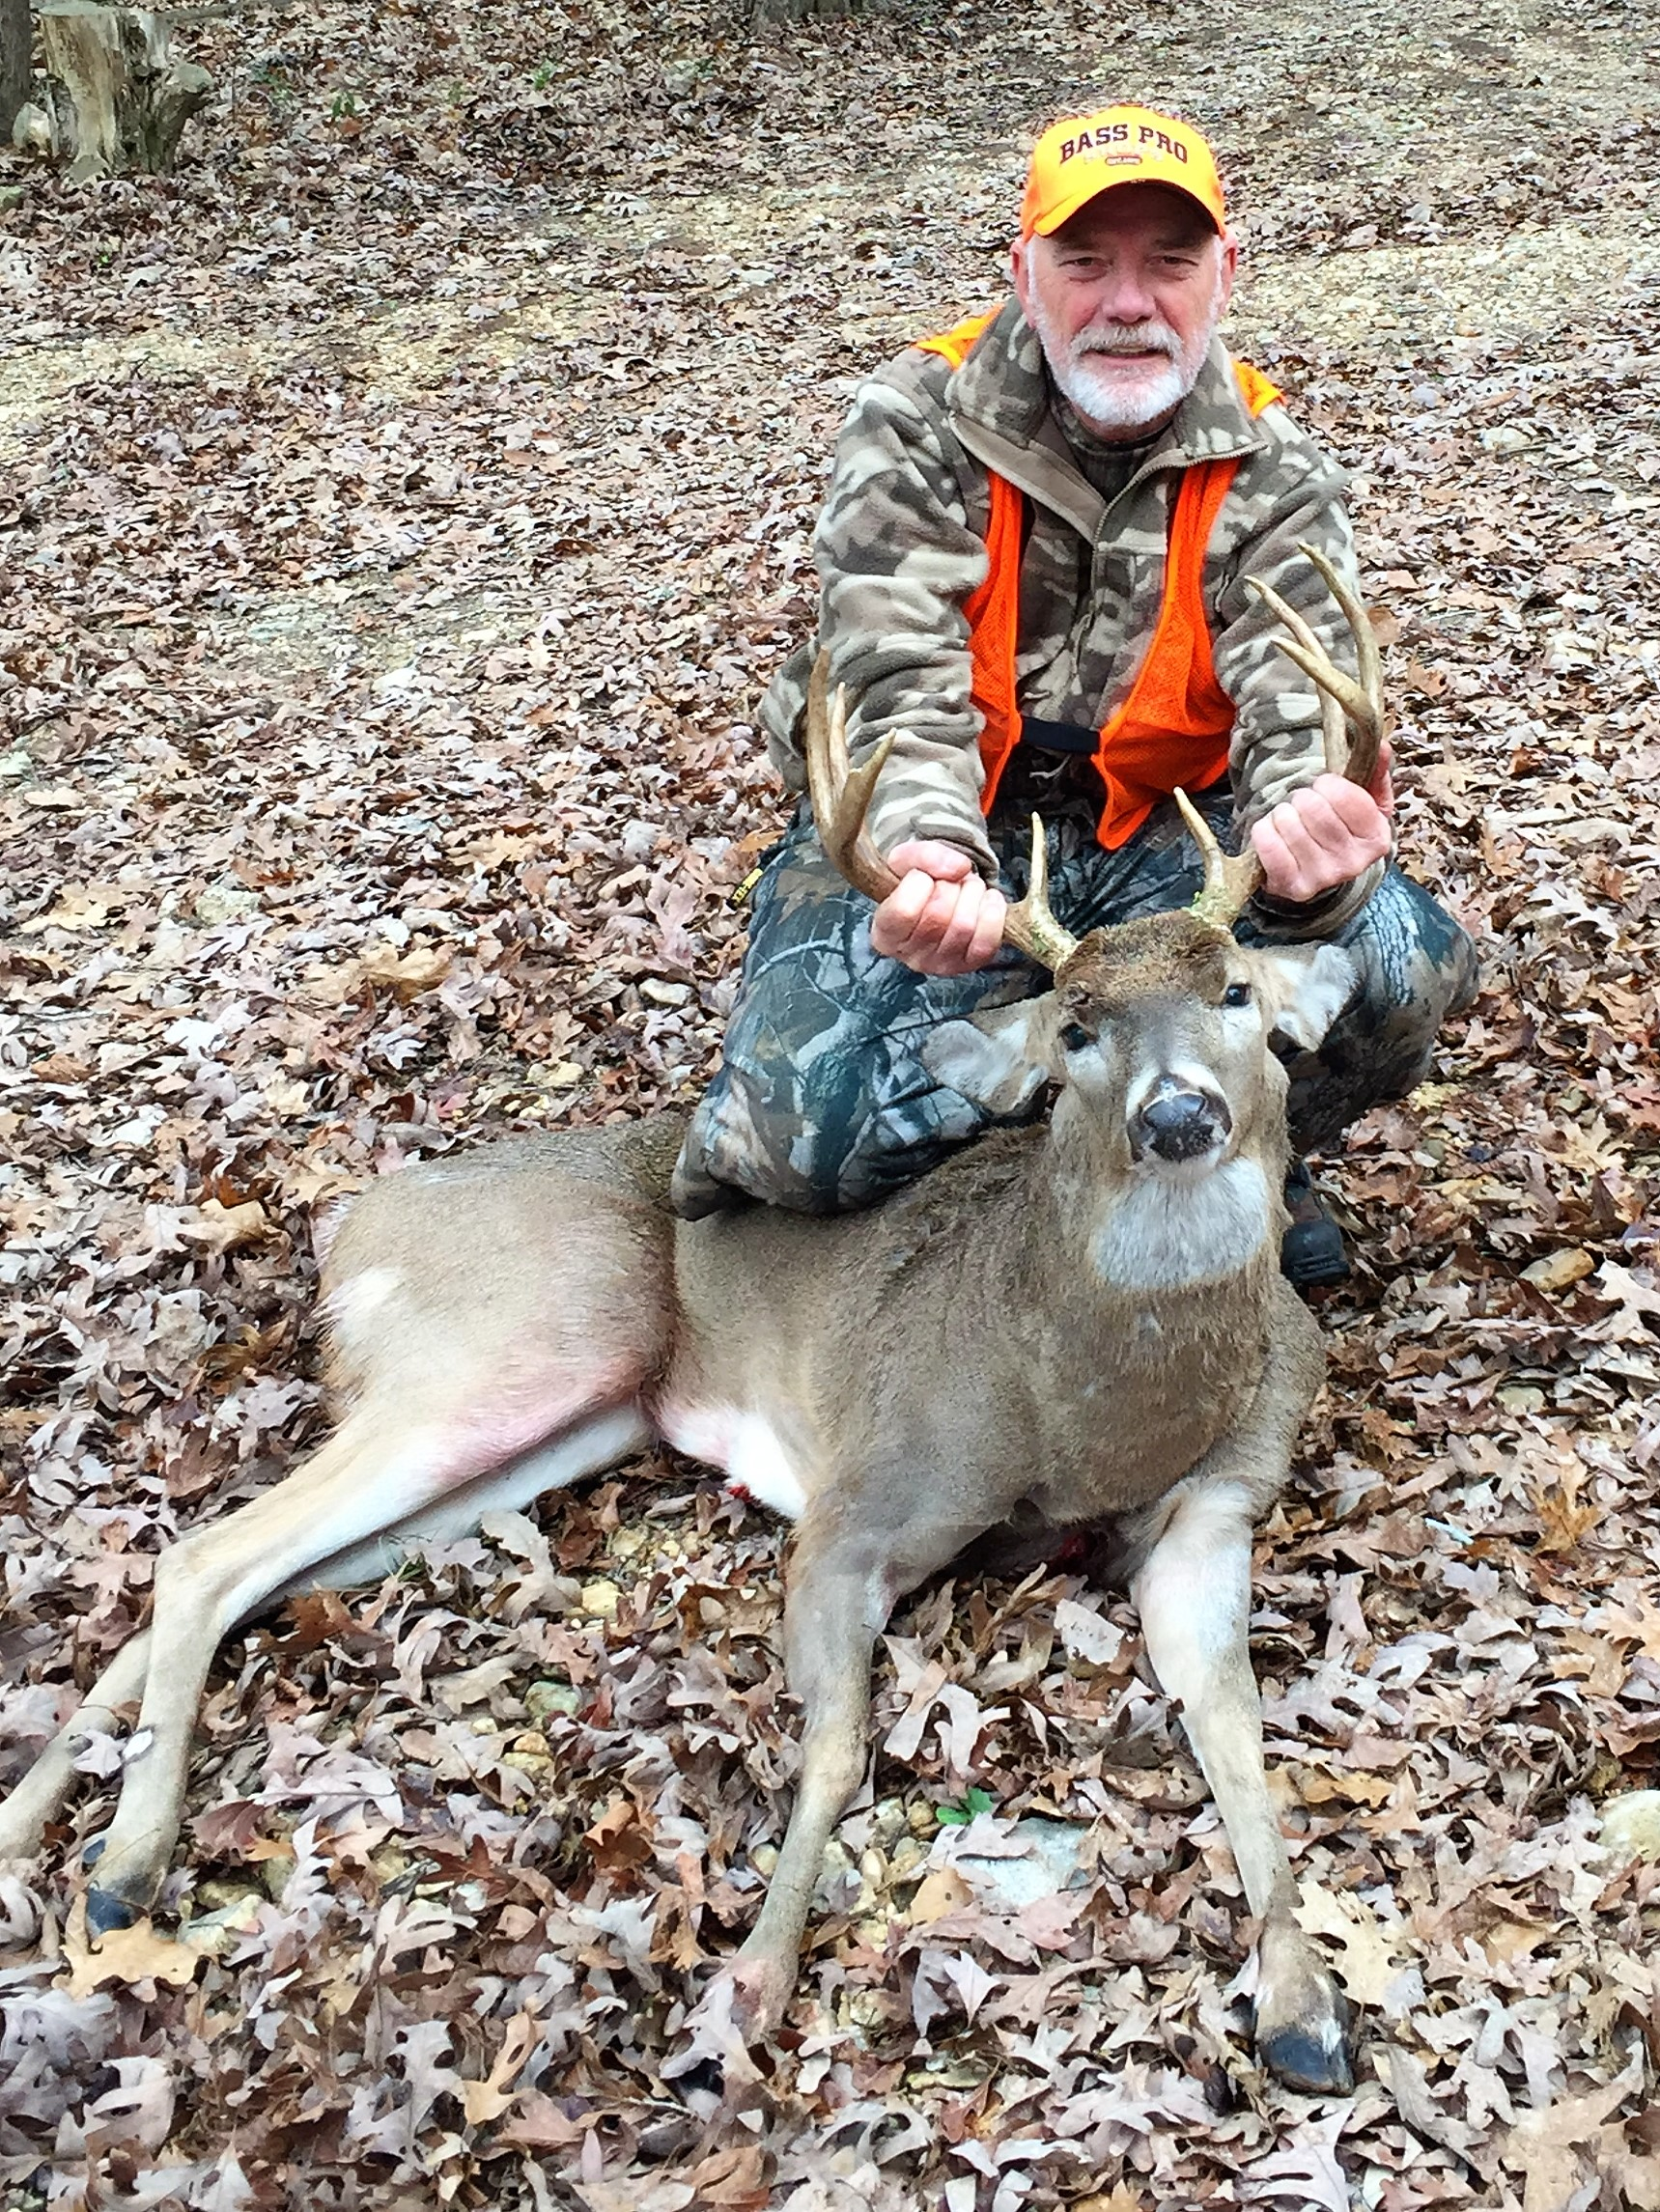 HELP FEED THOSE IN NEED THIS DEER SEASON